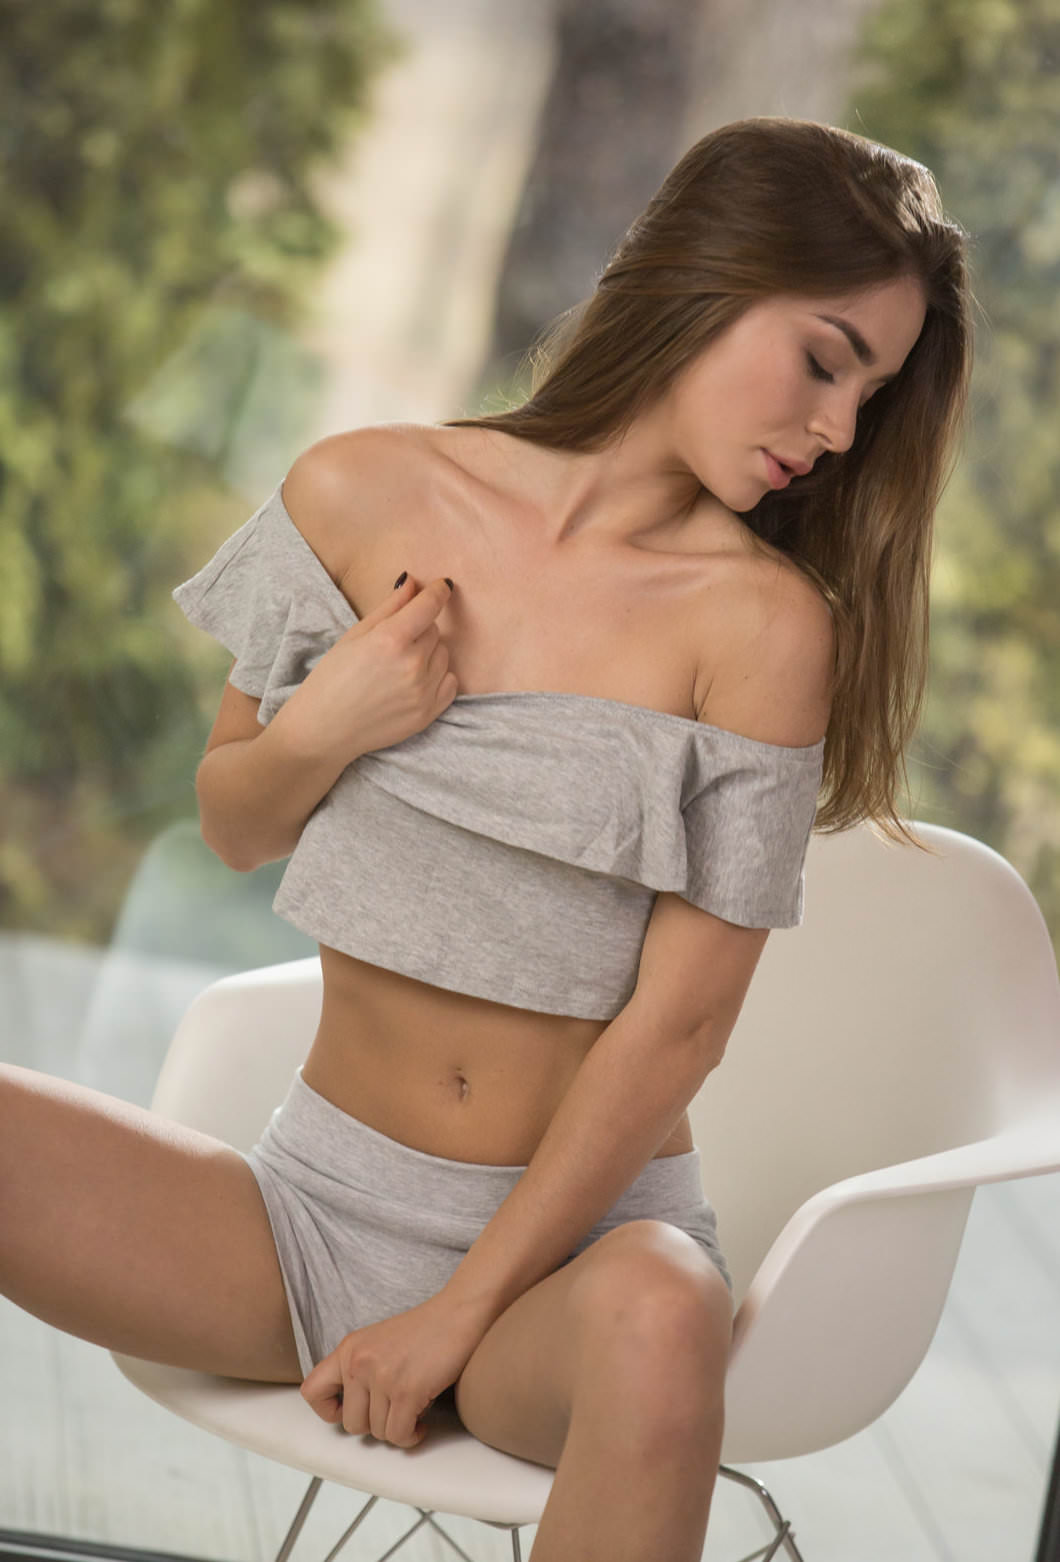 Consider, amsterdam escorts massage